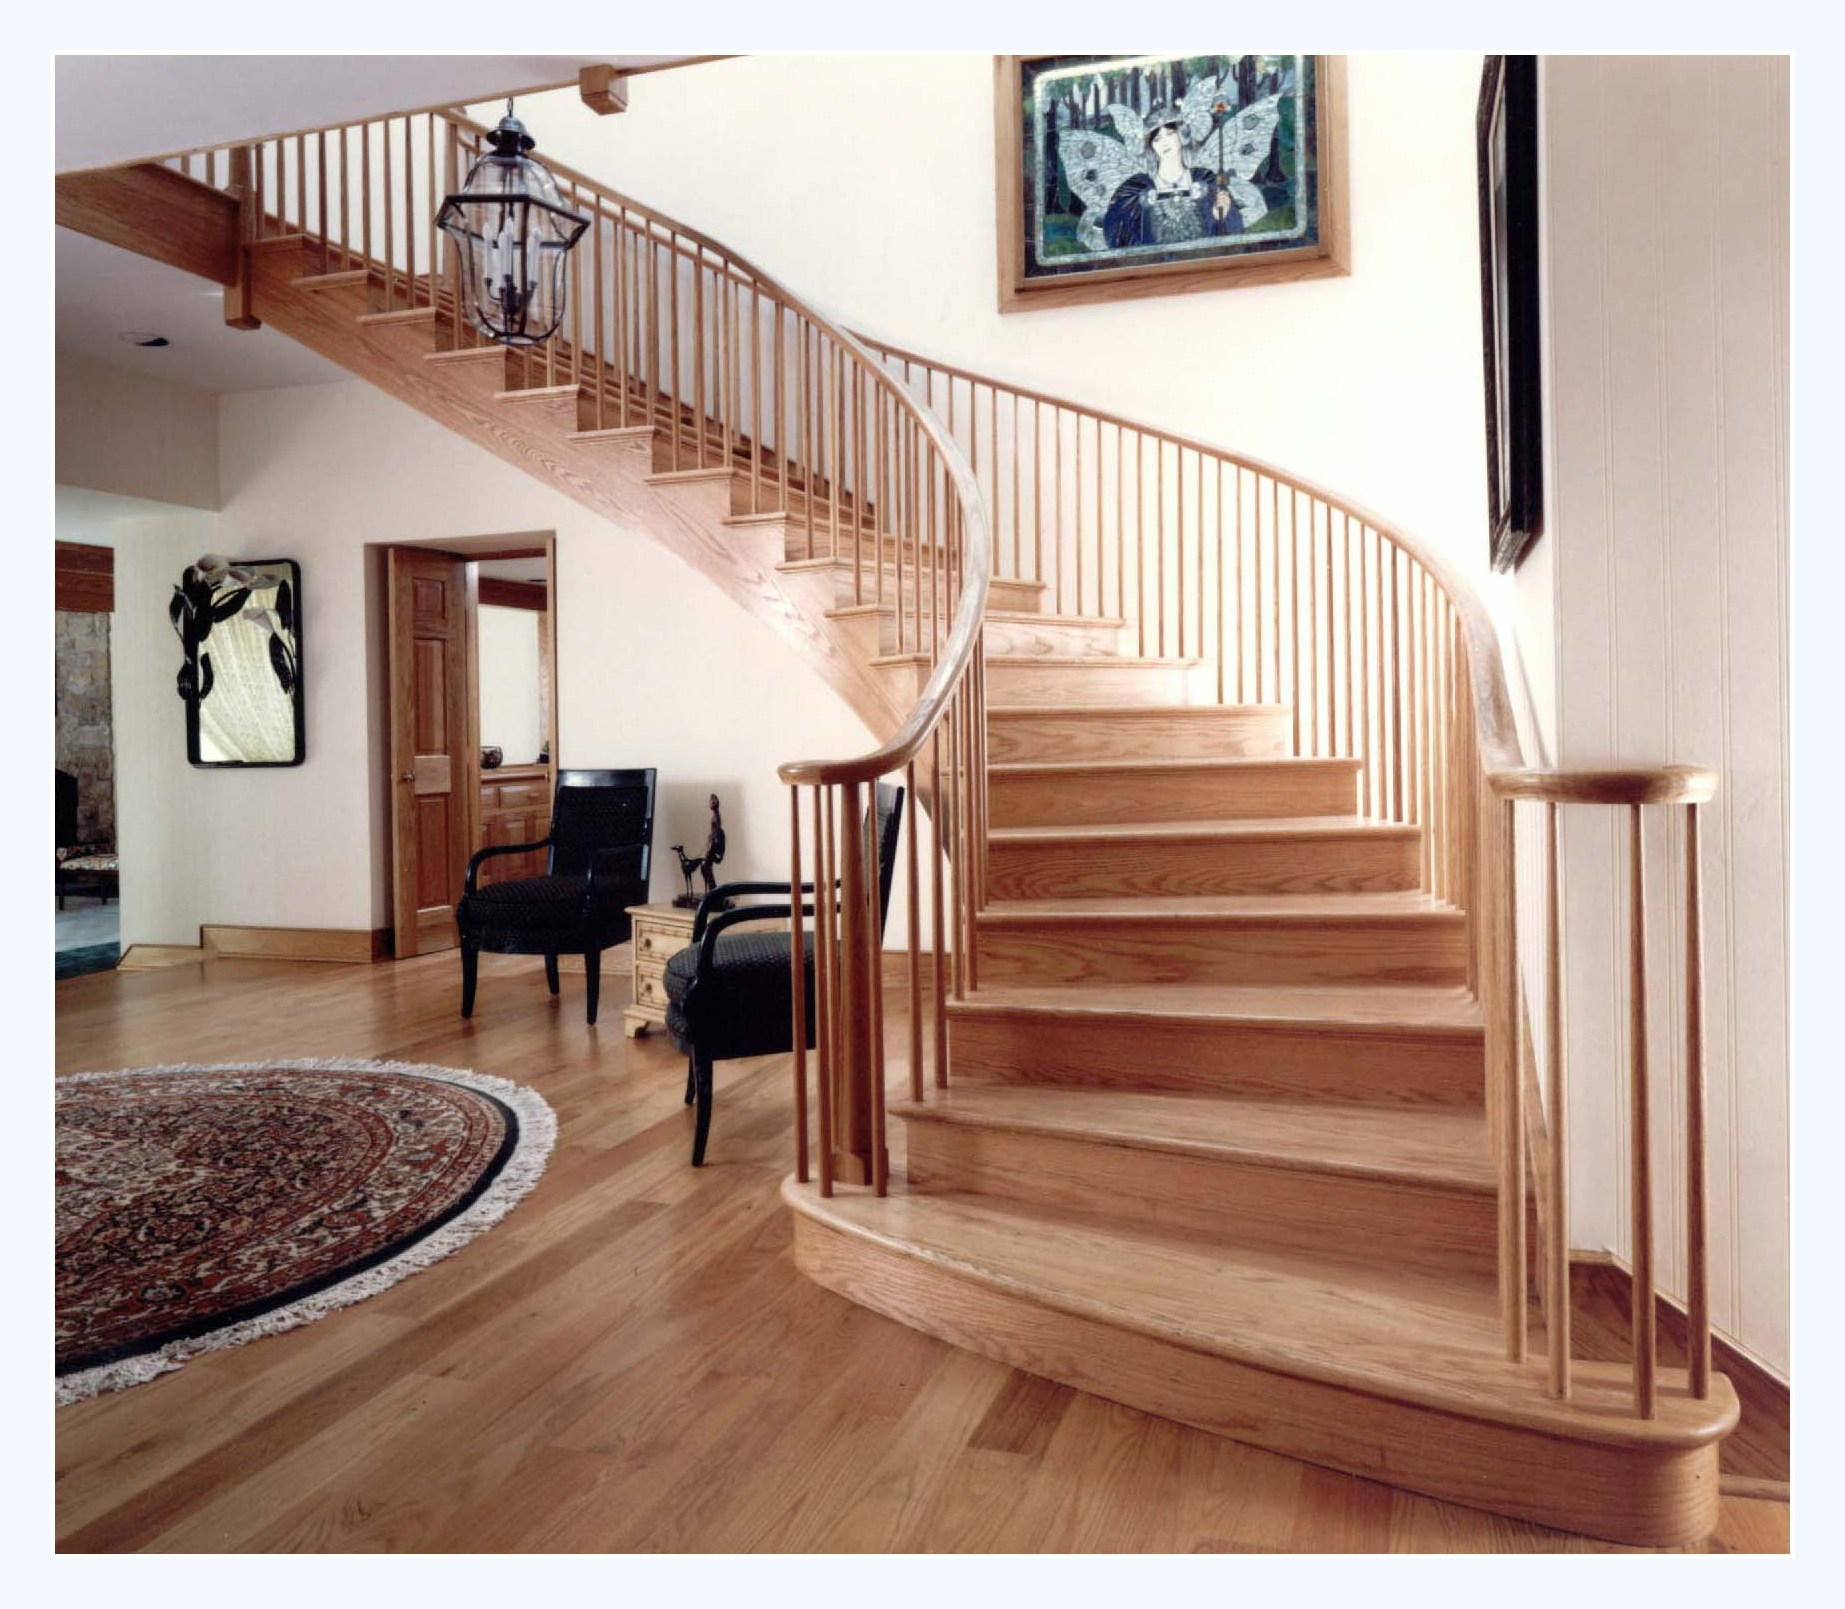 Interior Home Decoration Indoor Stairs Design Pictures: 25 Stair Design Ideas For Your Home